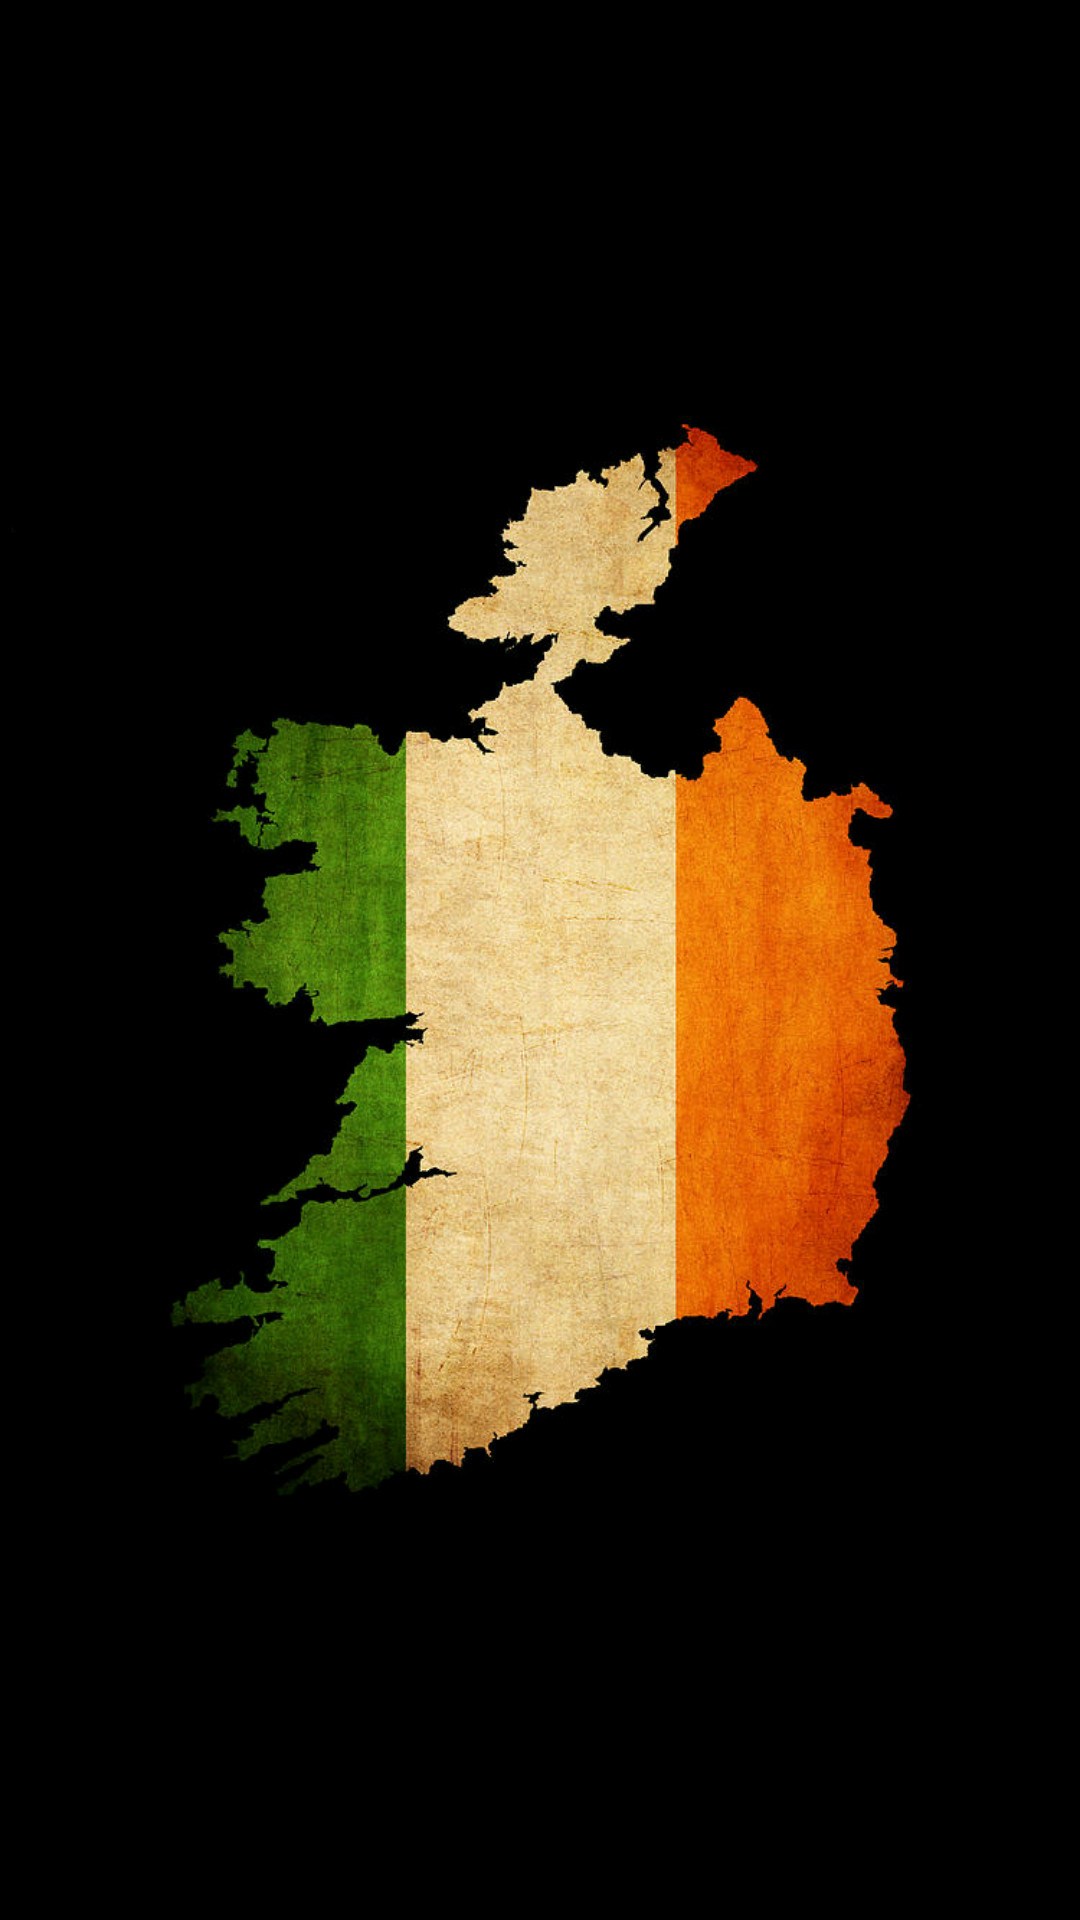 59 Irish Images Wallpapers on WallpaperPlay 1080x1920